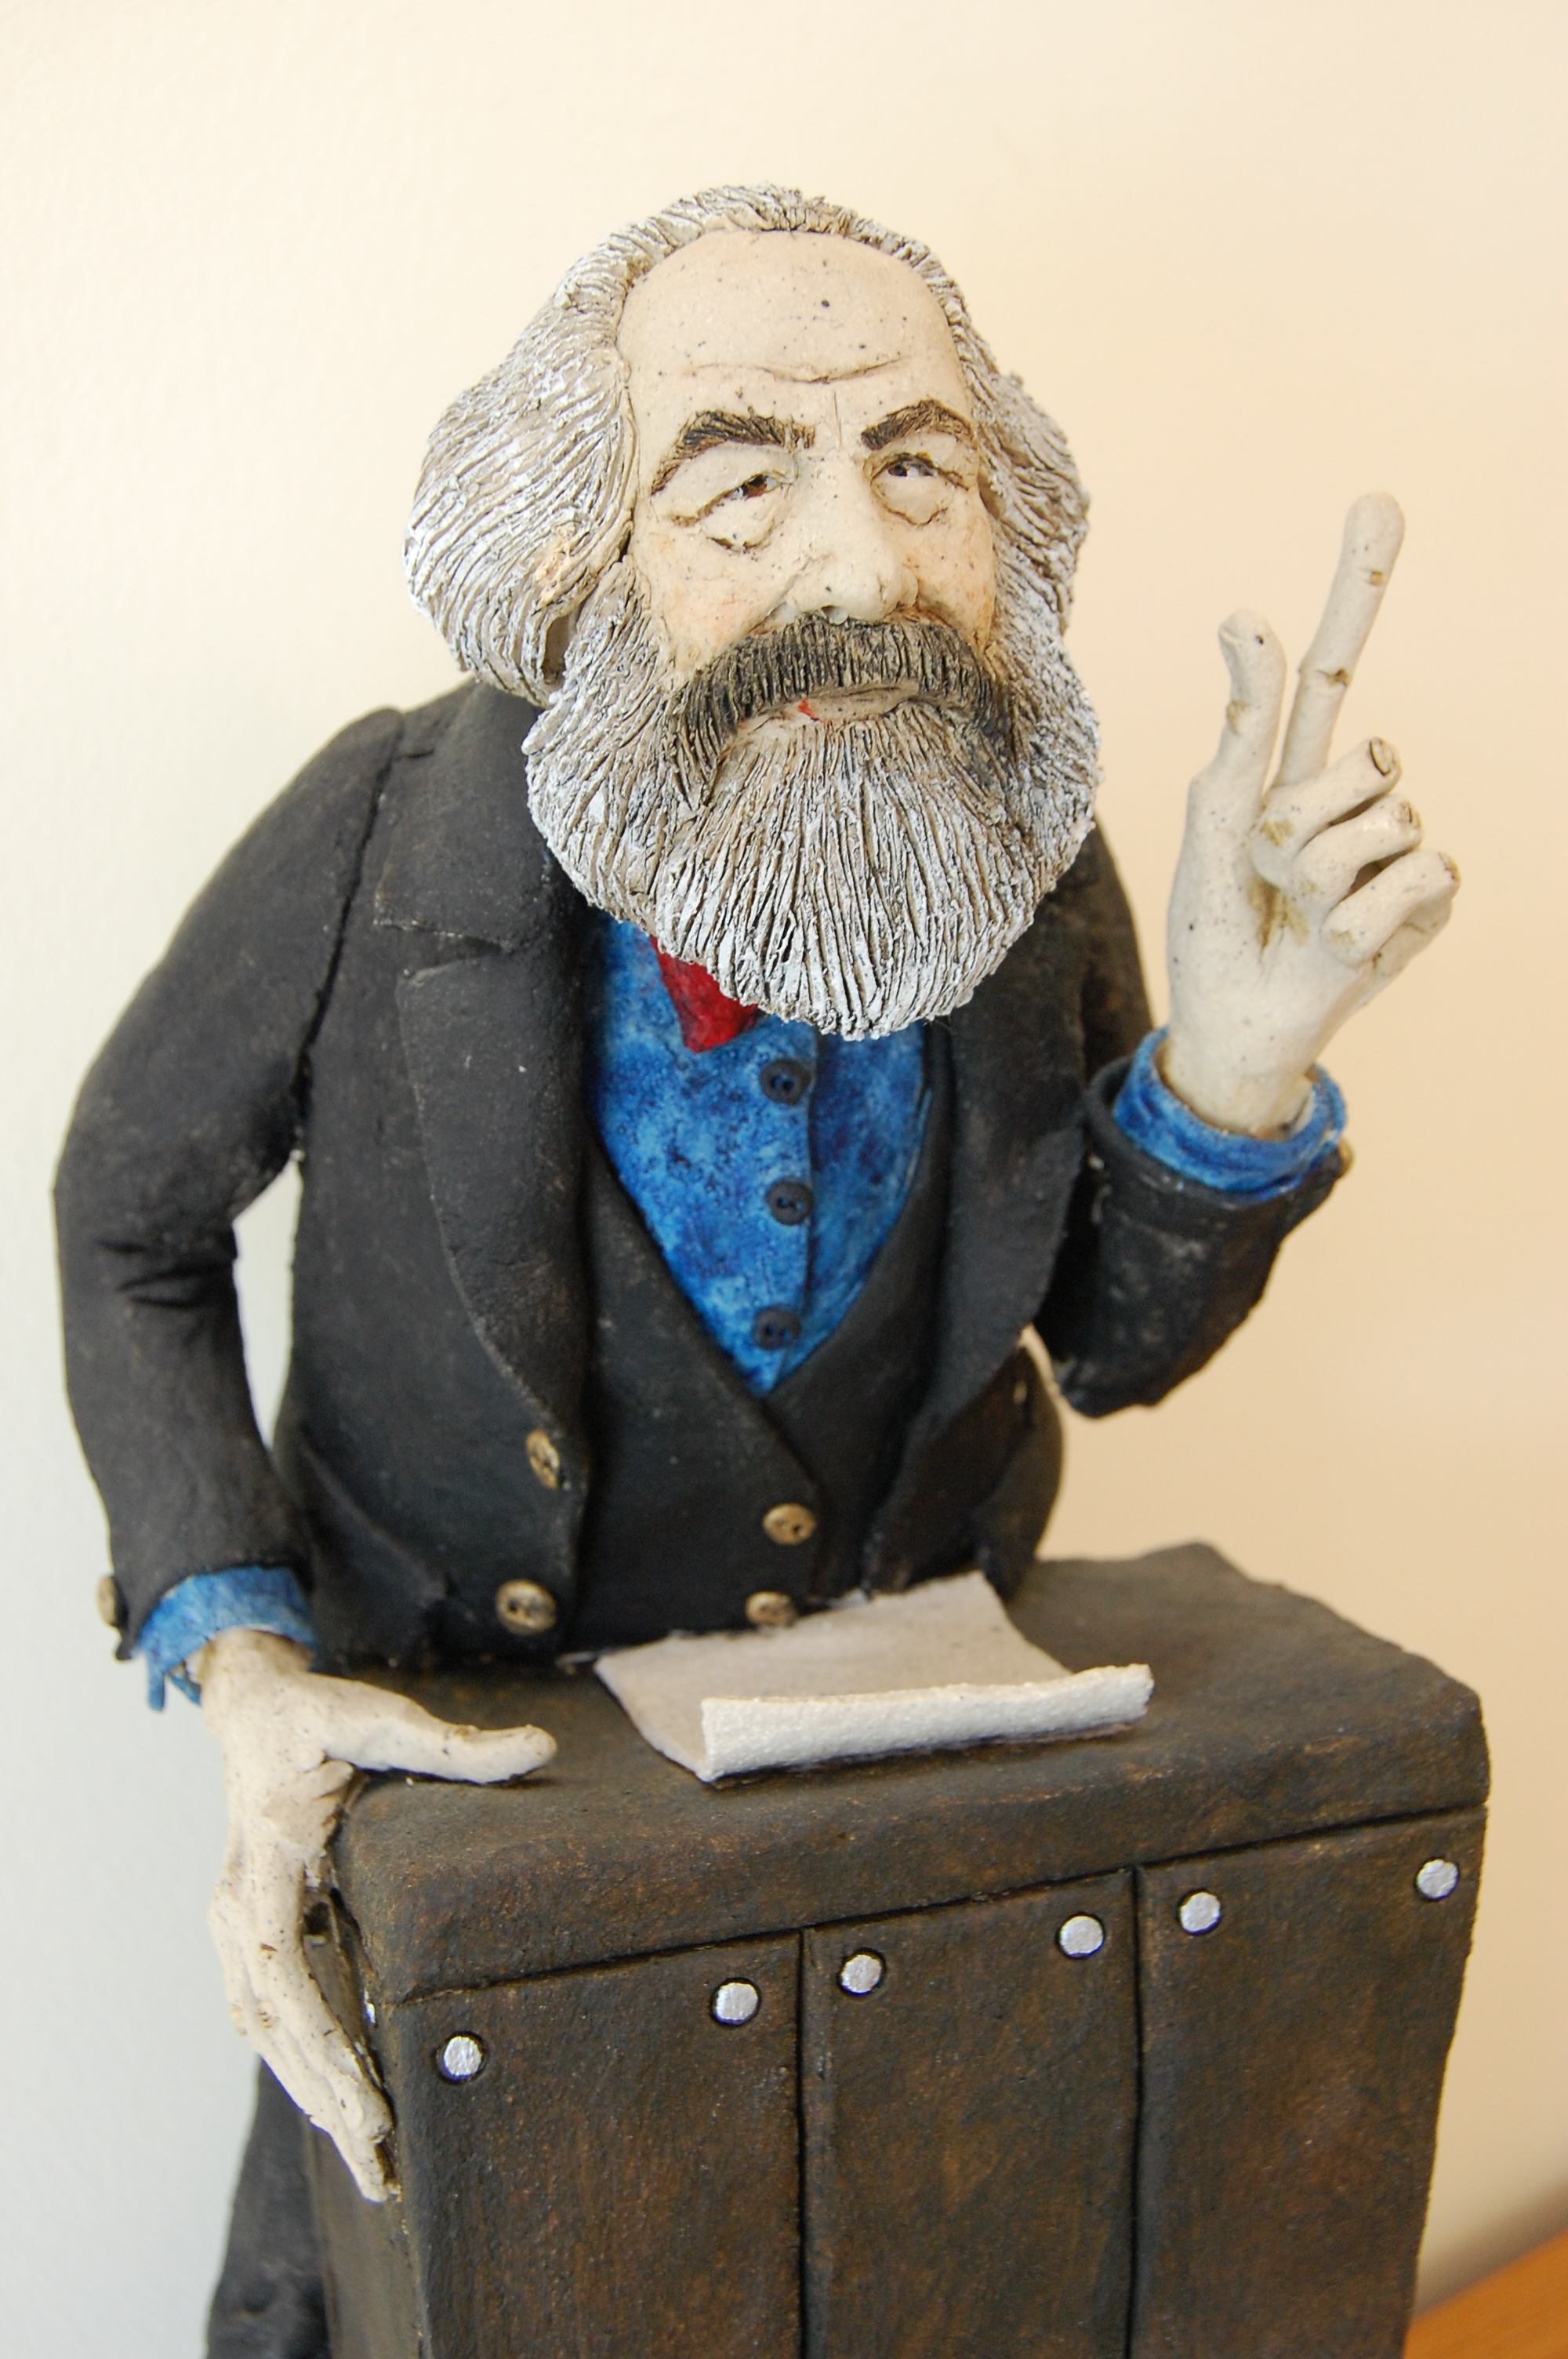 karl marx views essay Marx's ideas did not end at communism his religious ideology also helped shape  and mold the 20th century world karl marx was born in 1818.